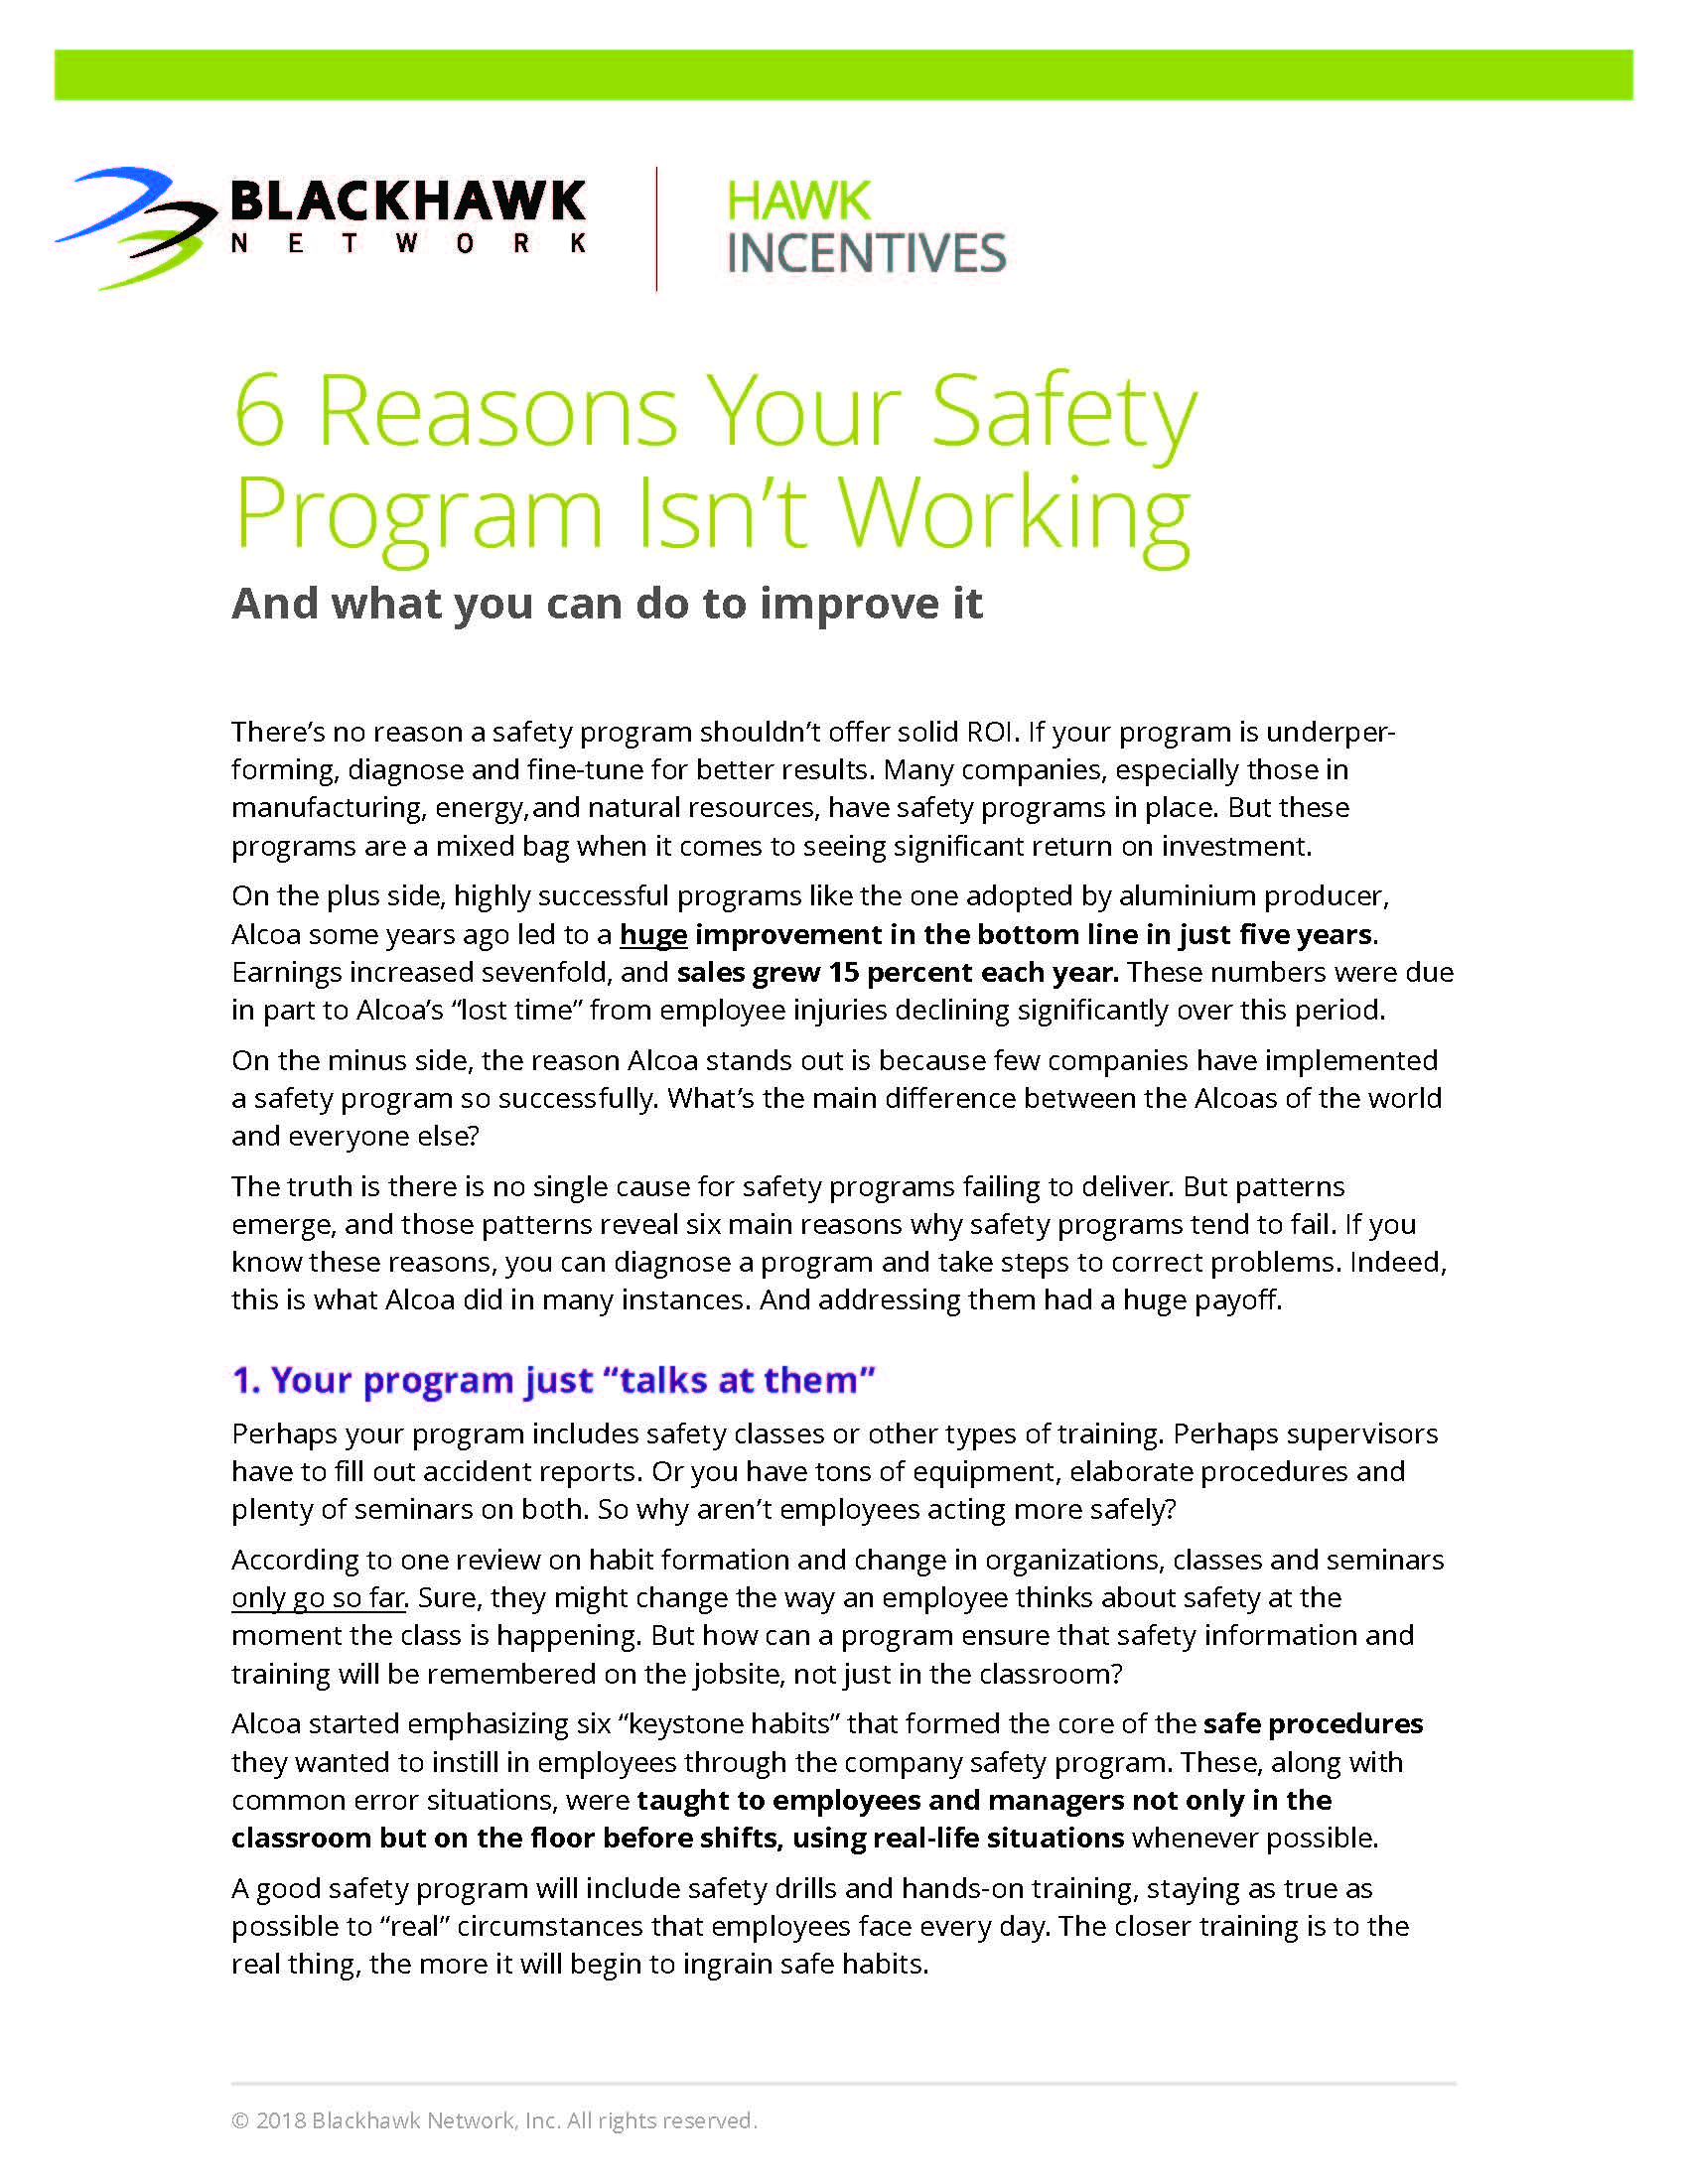 6 Reasons Your Safety Program Isn't Working